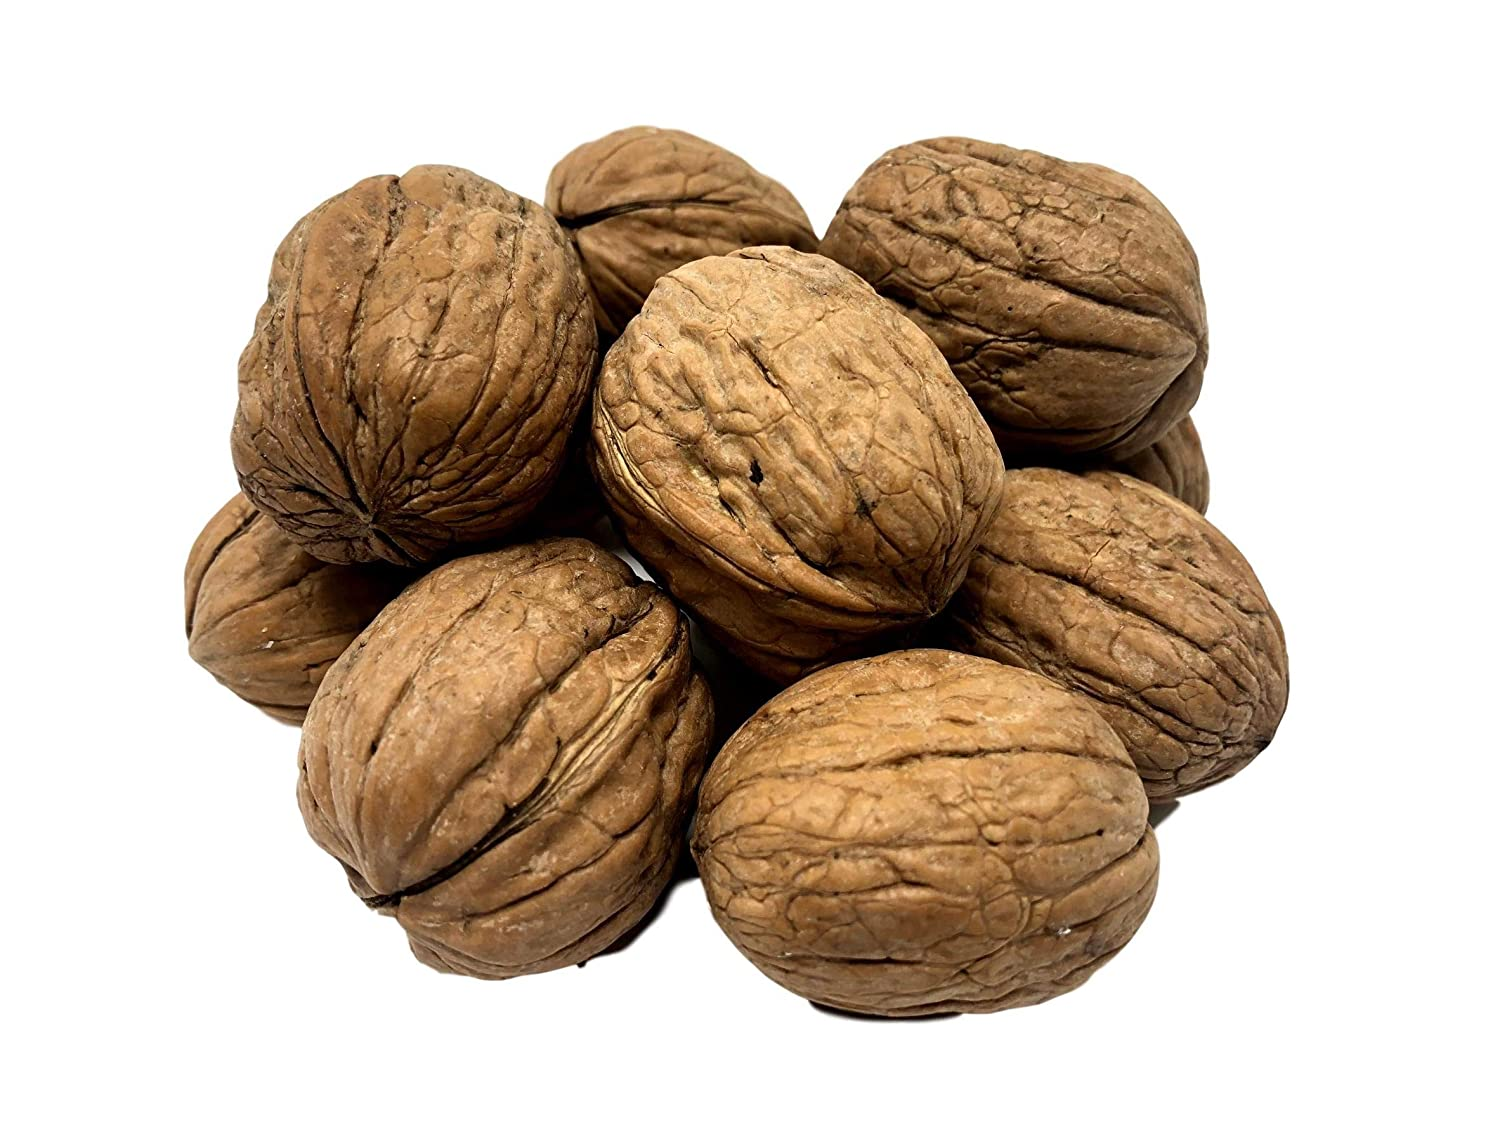 NUTS U.S. - Walnuts In Shell California Grown Topics OFFicial mail order on TV and Packed in